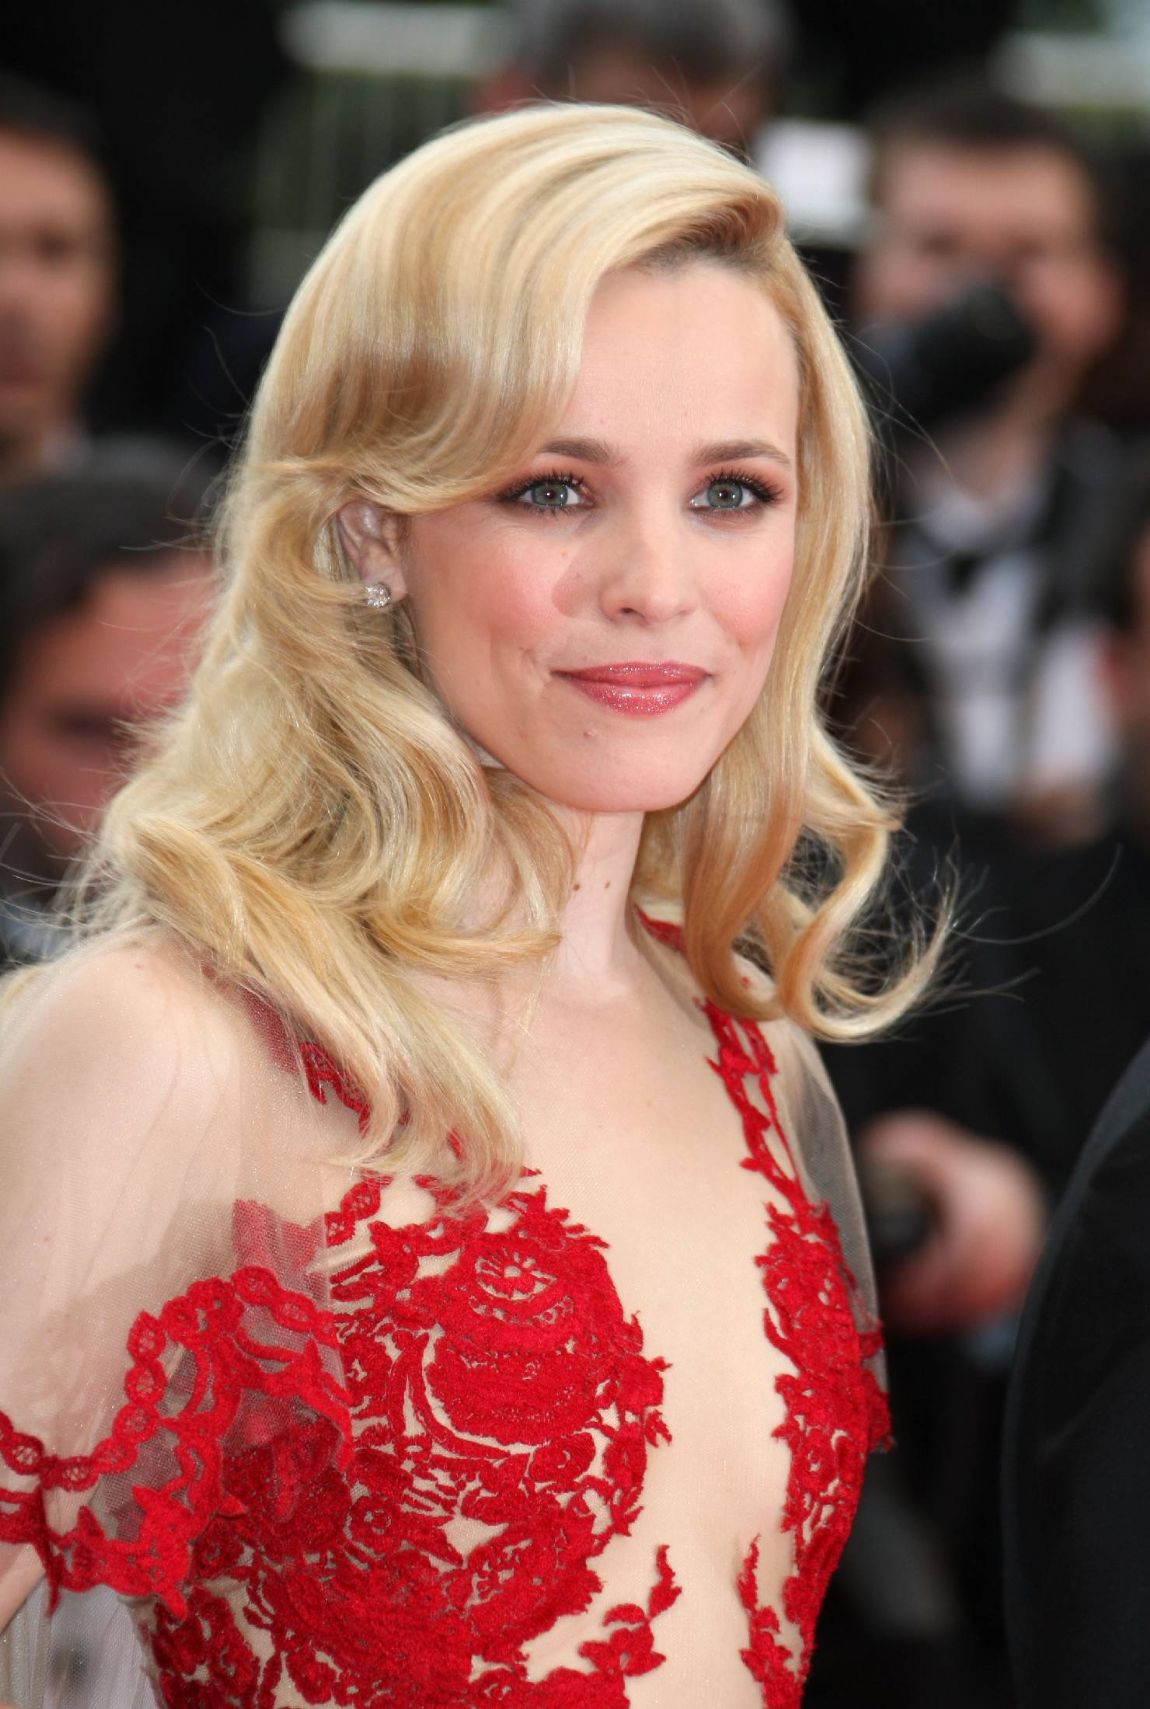 The 64th Annual Cannes Film Festival Red Carpet Style